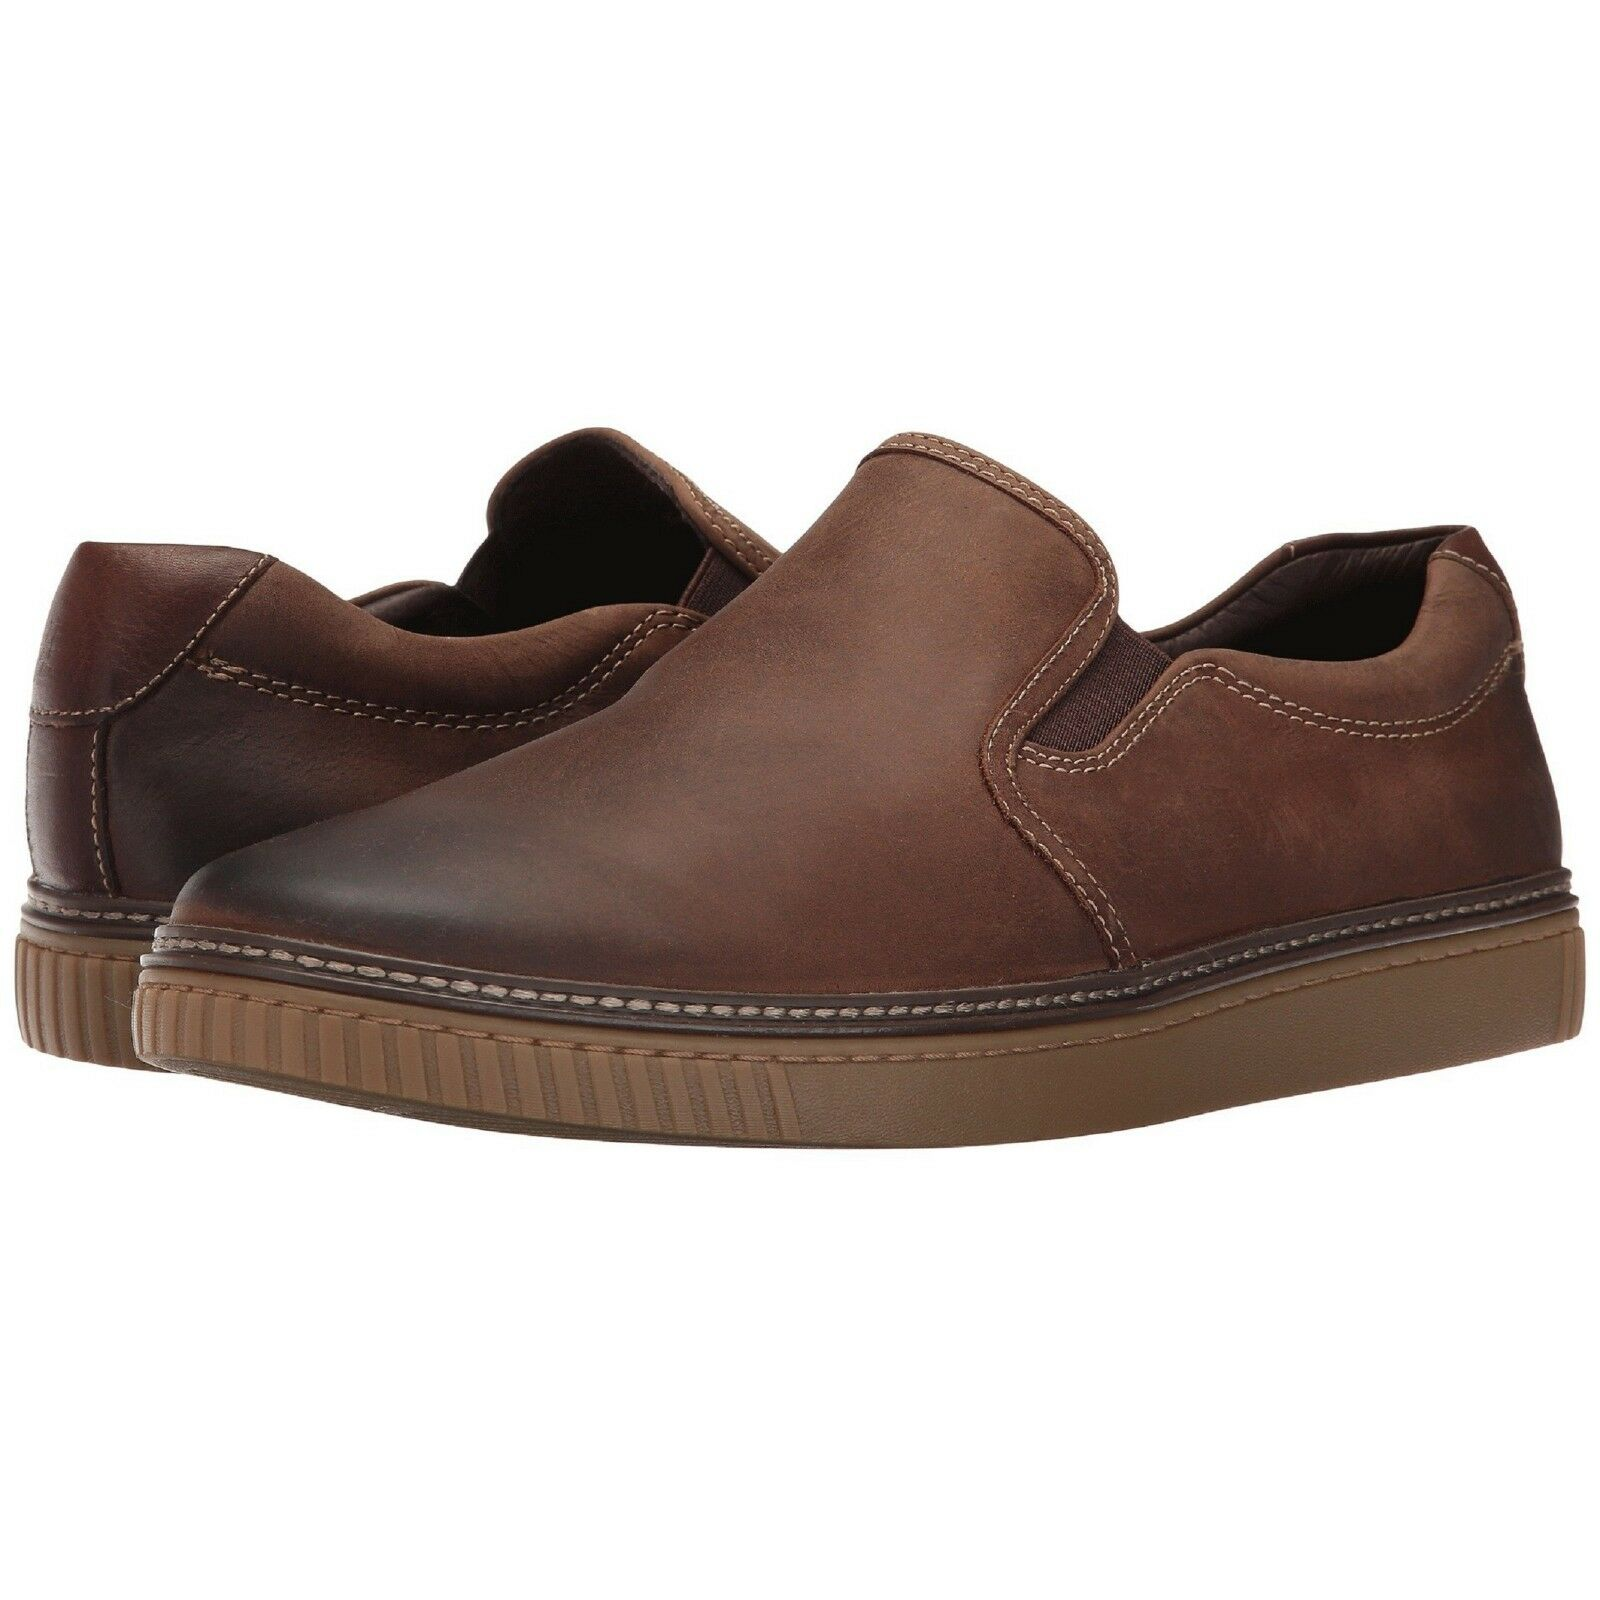 25-2820 Slip-On  Brown Oiled Leather, Johnston&Murphy Men's Dress-up shoes